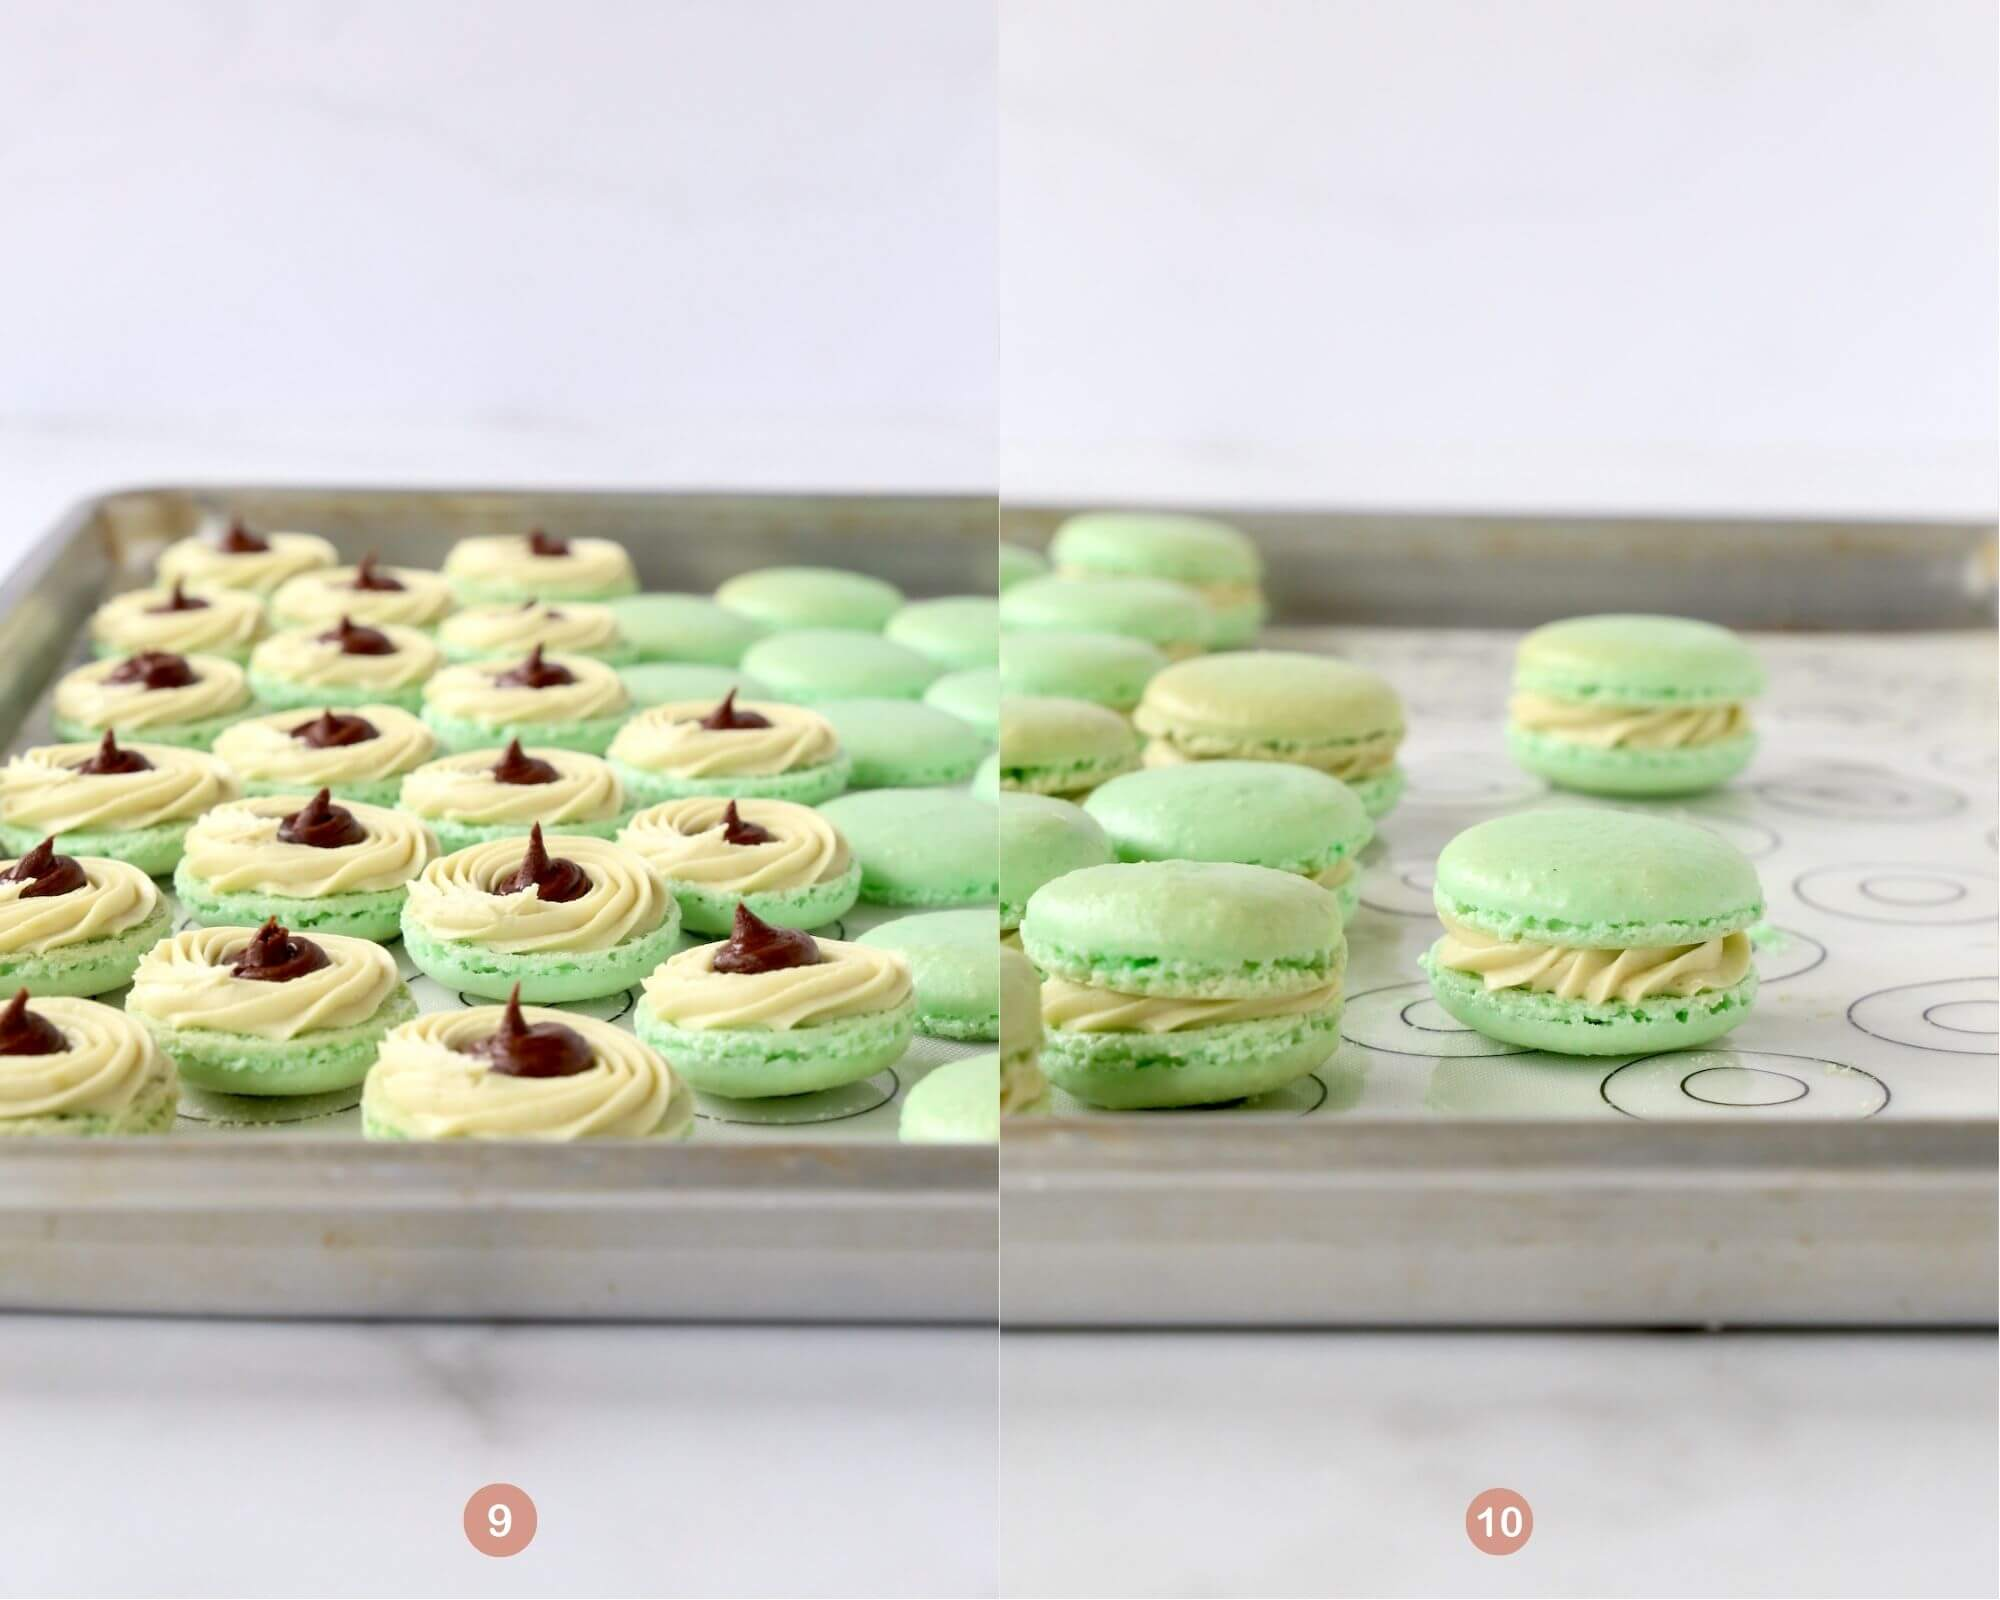 A sheet pan of macarons filled with pistachio buttercream and chocolate ganache next to a sheet pan of macarons sandwiched.